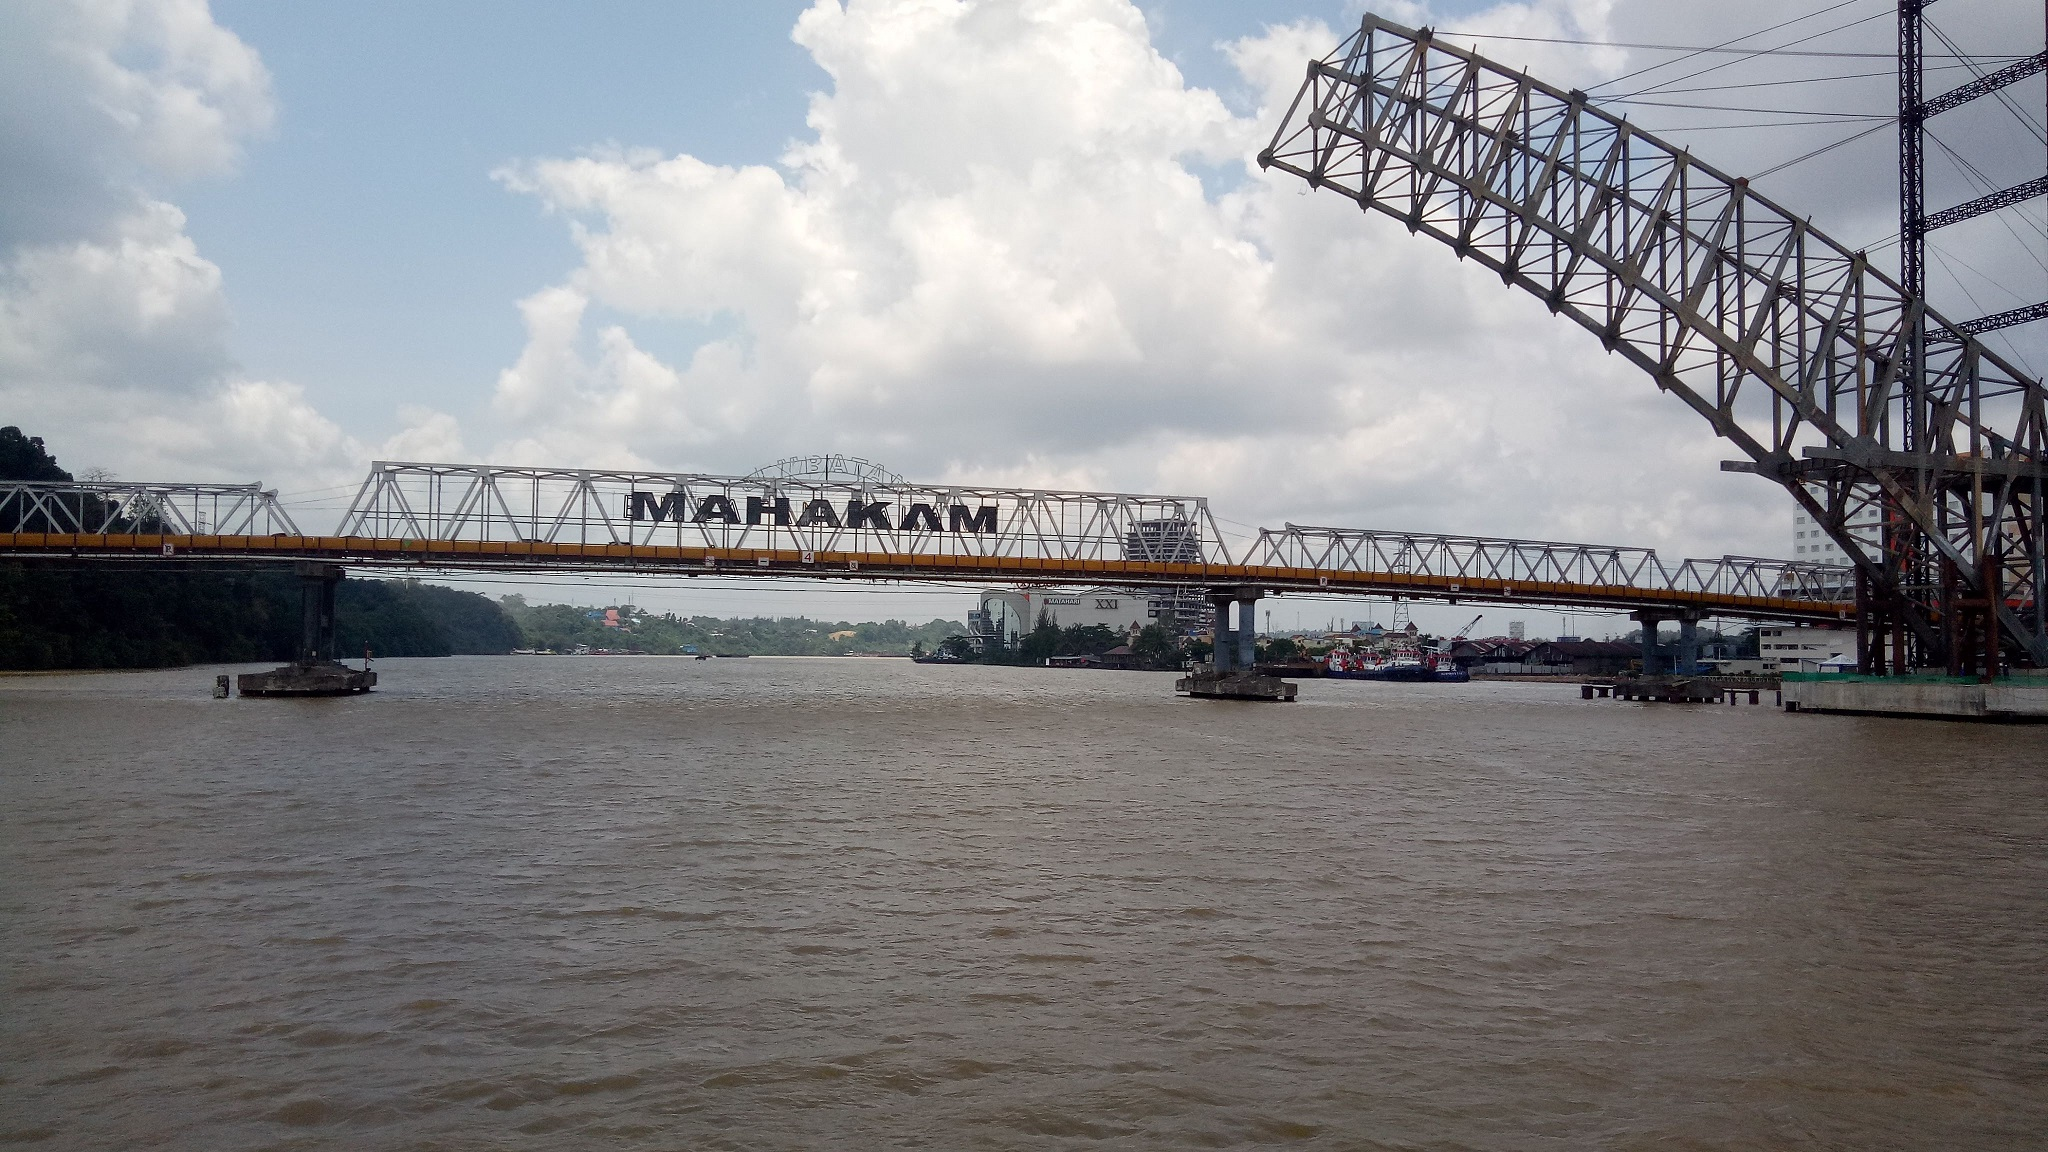 mahakam river touristy place in kalimantan